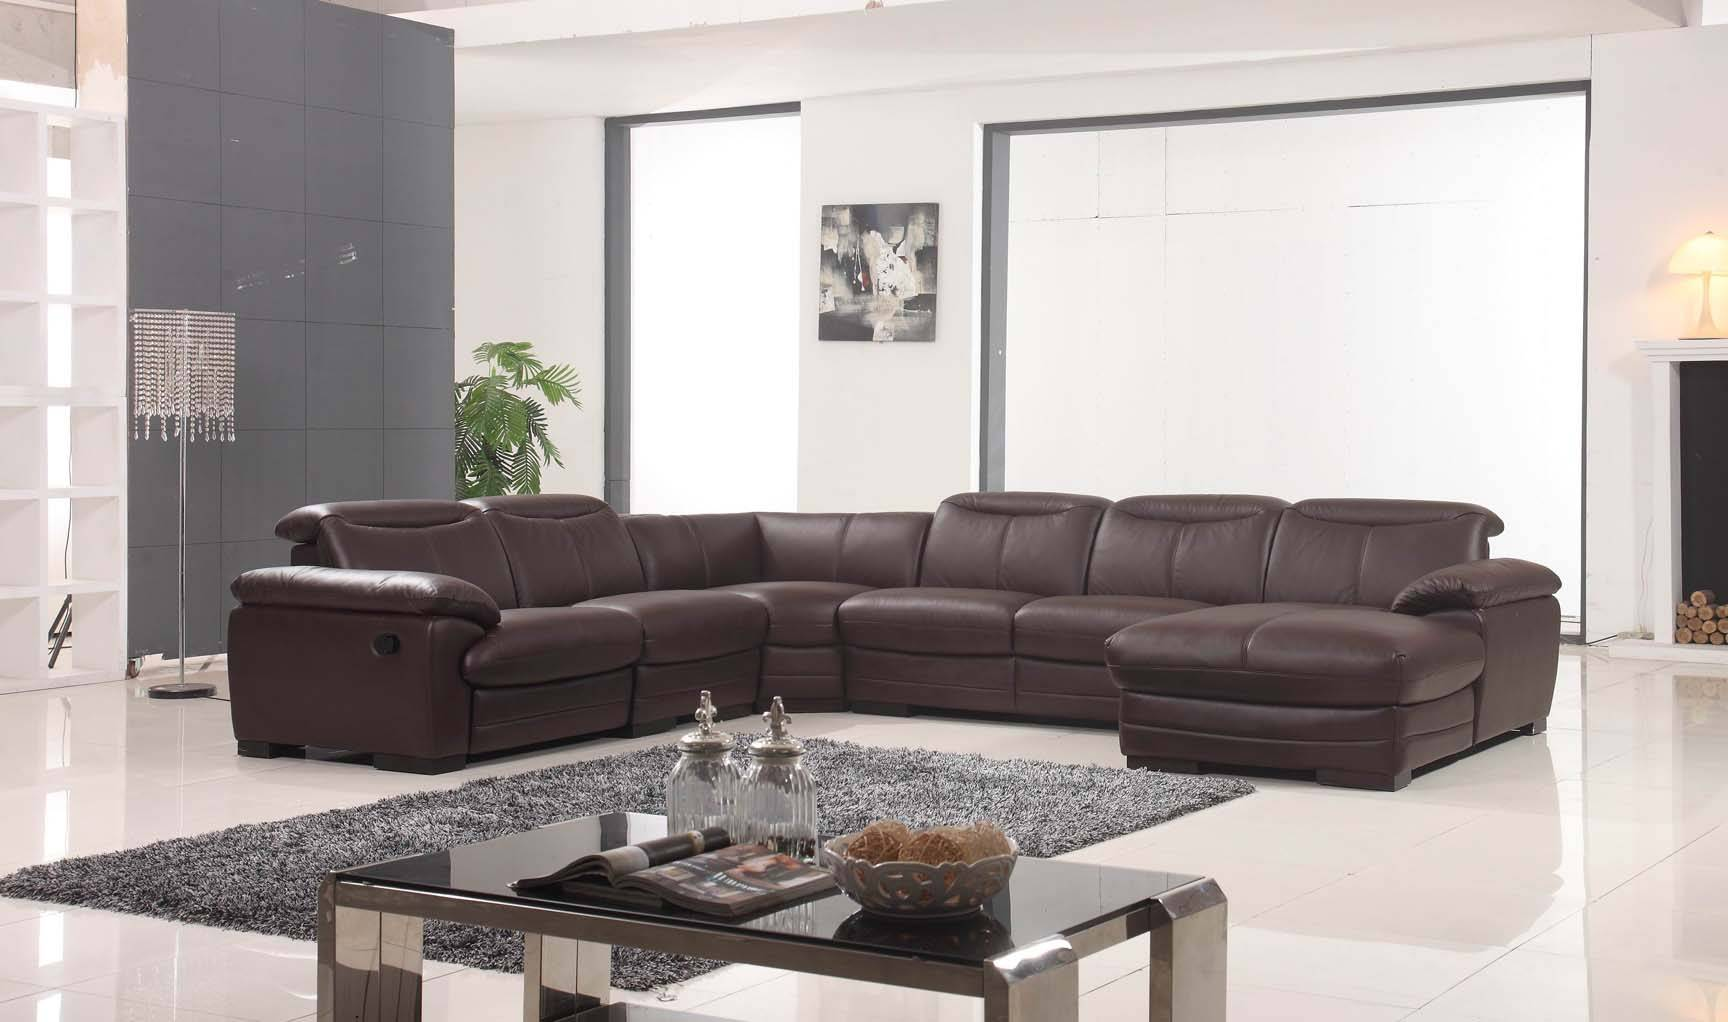 huge italian white leather modern sectional sofa set replacement feet uk large brown contemporary with